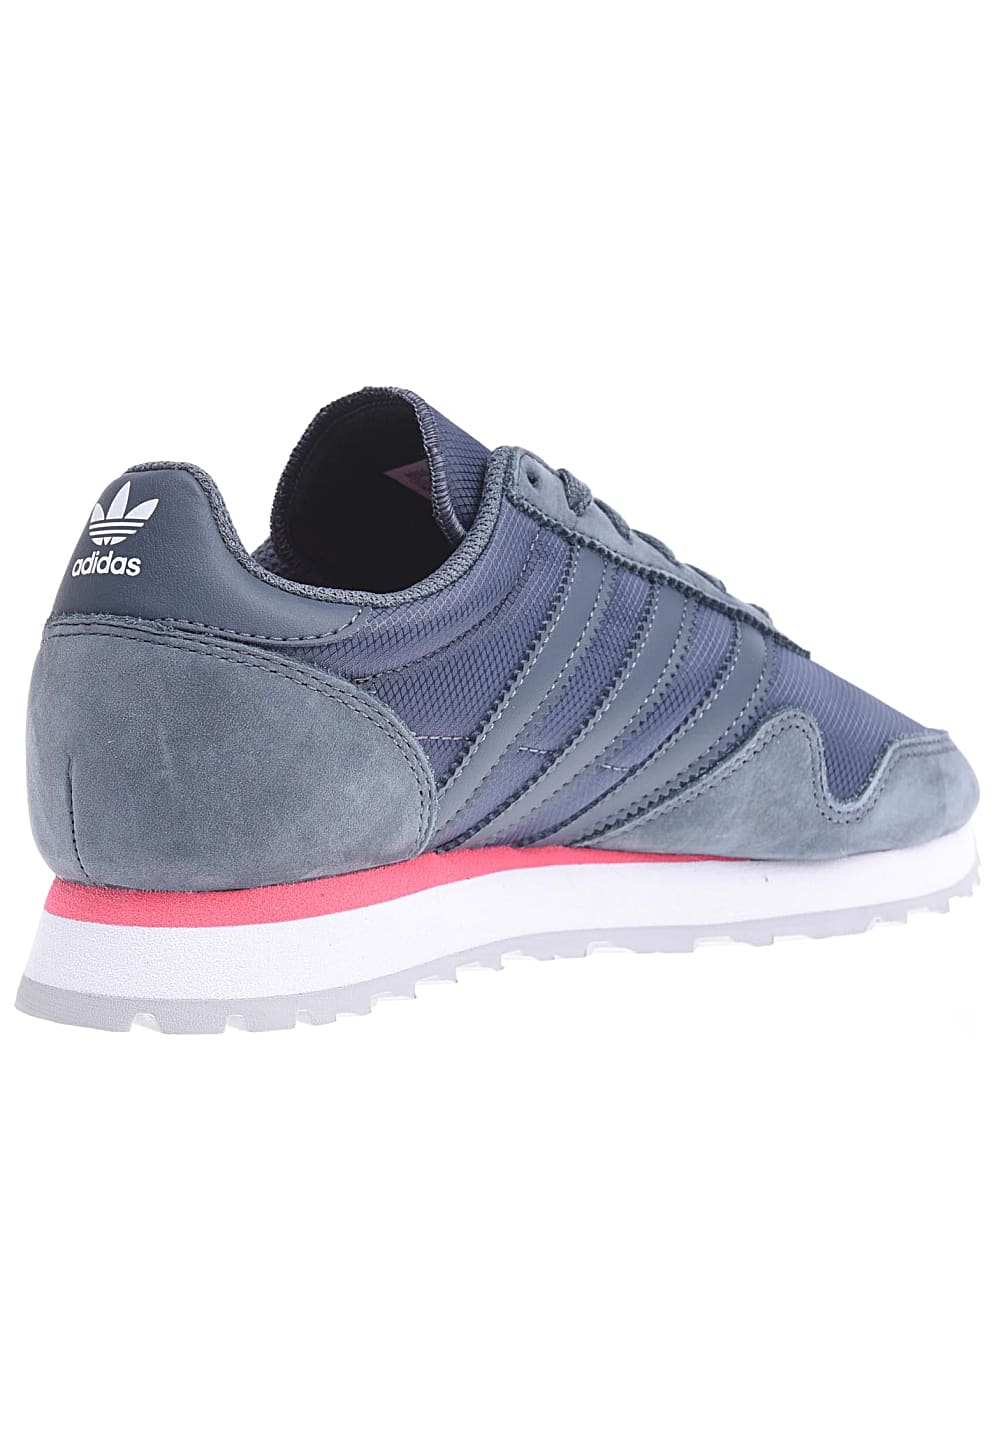 Originals Haven Adidas Damen Für Sneaker Grau 5j4A3RL